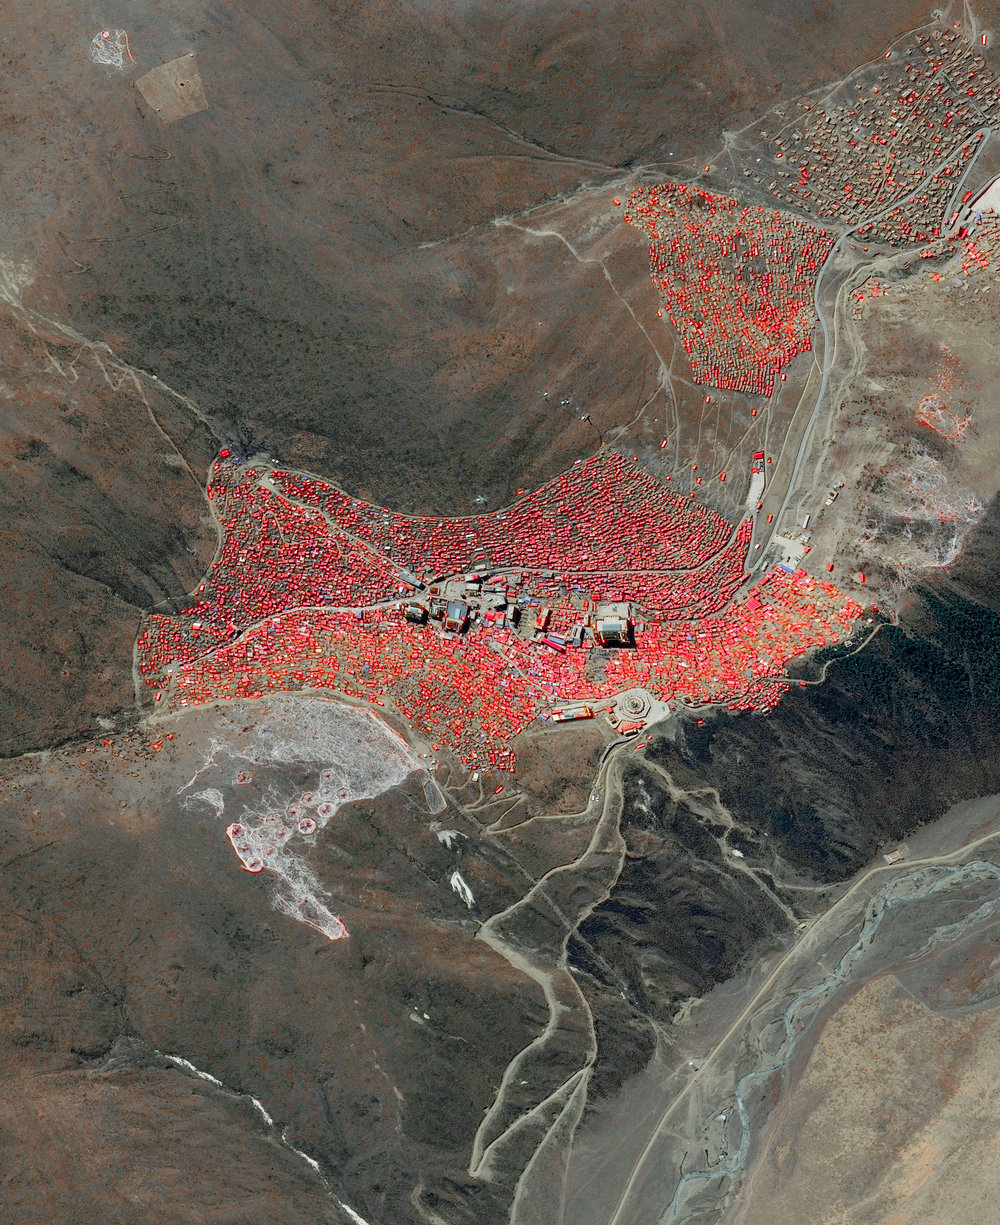 11/29/2016 Larung Gar Tibet 32.1356°N 100.4565°E   Hundreds of dwellings - all painted in a vibrant red color - make up Larung Gar, the world's largest Buddhist institute. The settlement is located in a remote valley in Tibet and contains a population that has grown to approximately 20,000 people since its founding in 1980. In recent years, the Chinese government has started to systemically demolish homes and force thousands of occupants out of Larung Gar, claiming the settlement is too crowded and unsafe. They have also closed off the area to all foreigners. Many Tibetans fear the erosion of their language, traditions, and ways of worship in the midst of these incursions by the Chinese government.